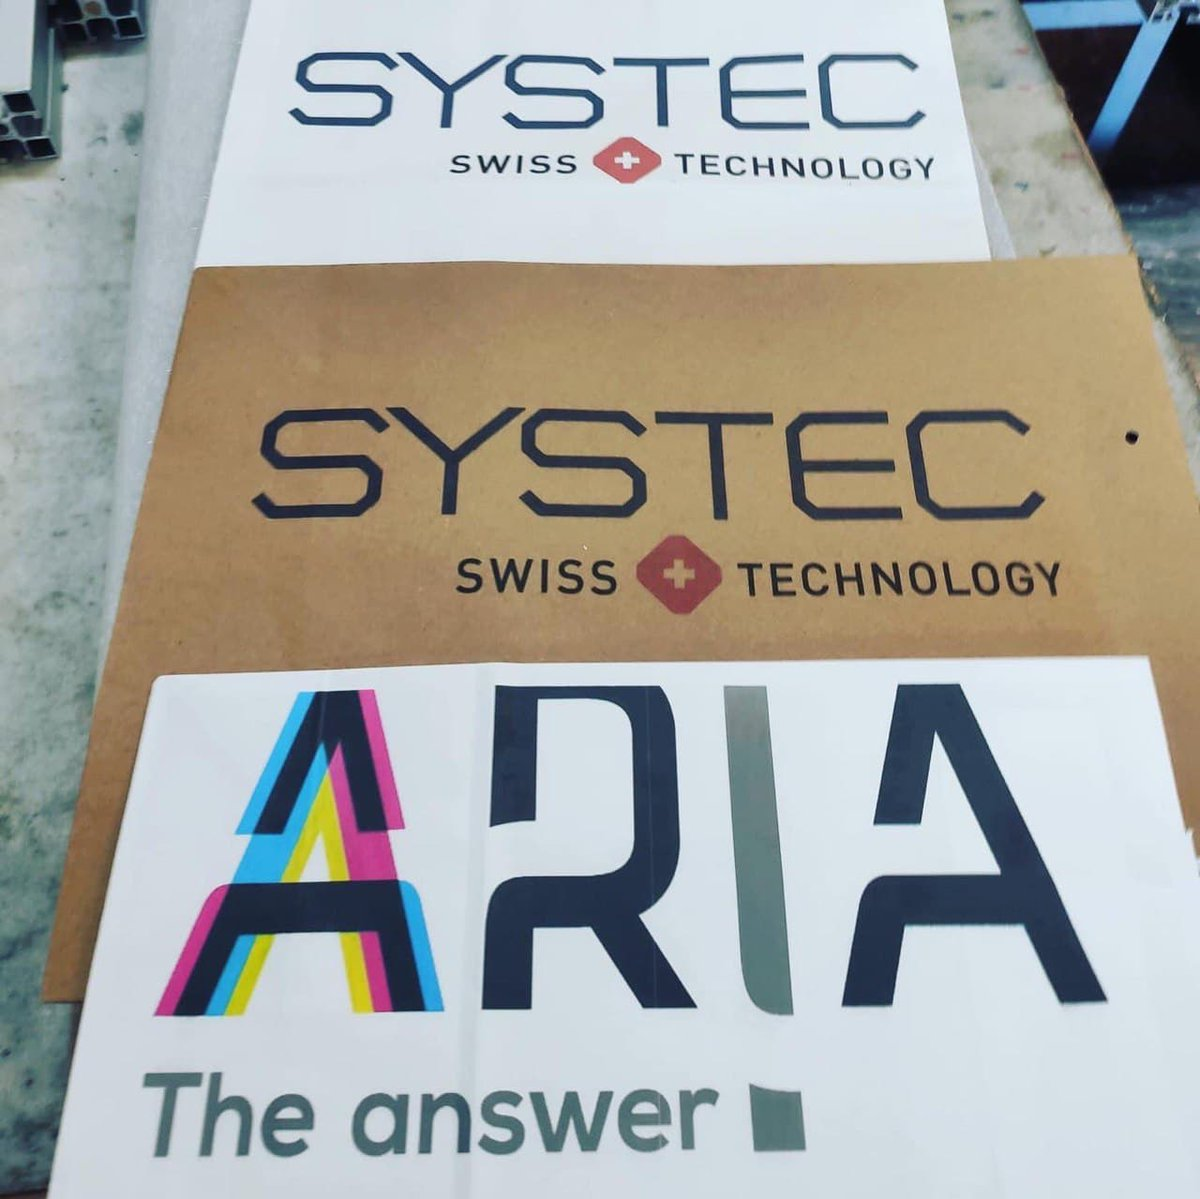 The samples from Aria look beautiful! @systec_conv    Aria is powered by Memjet DuraFlex technology and is a new digital printing machine for overprinting on packages.   https://t.co/jjZf6QBhpI  #printing #packaging #design #innovation